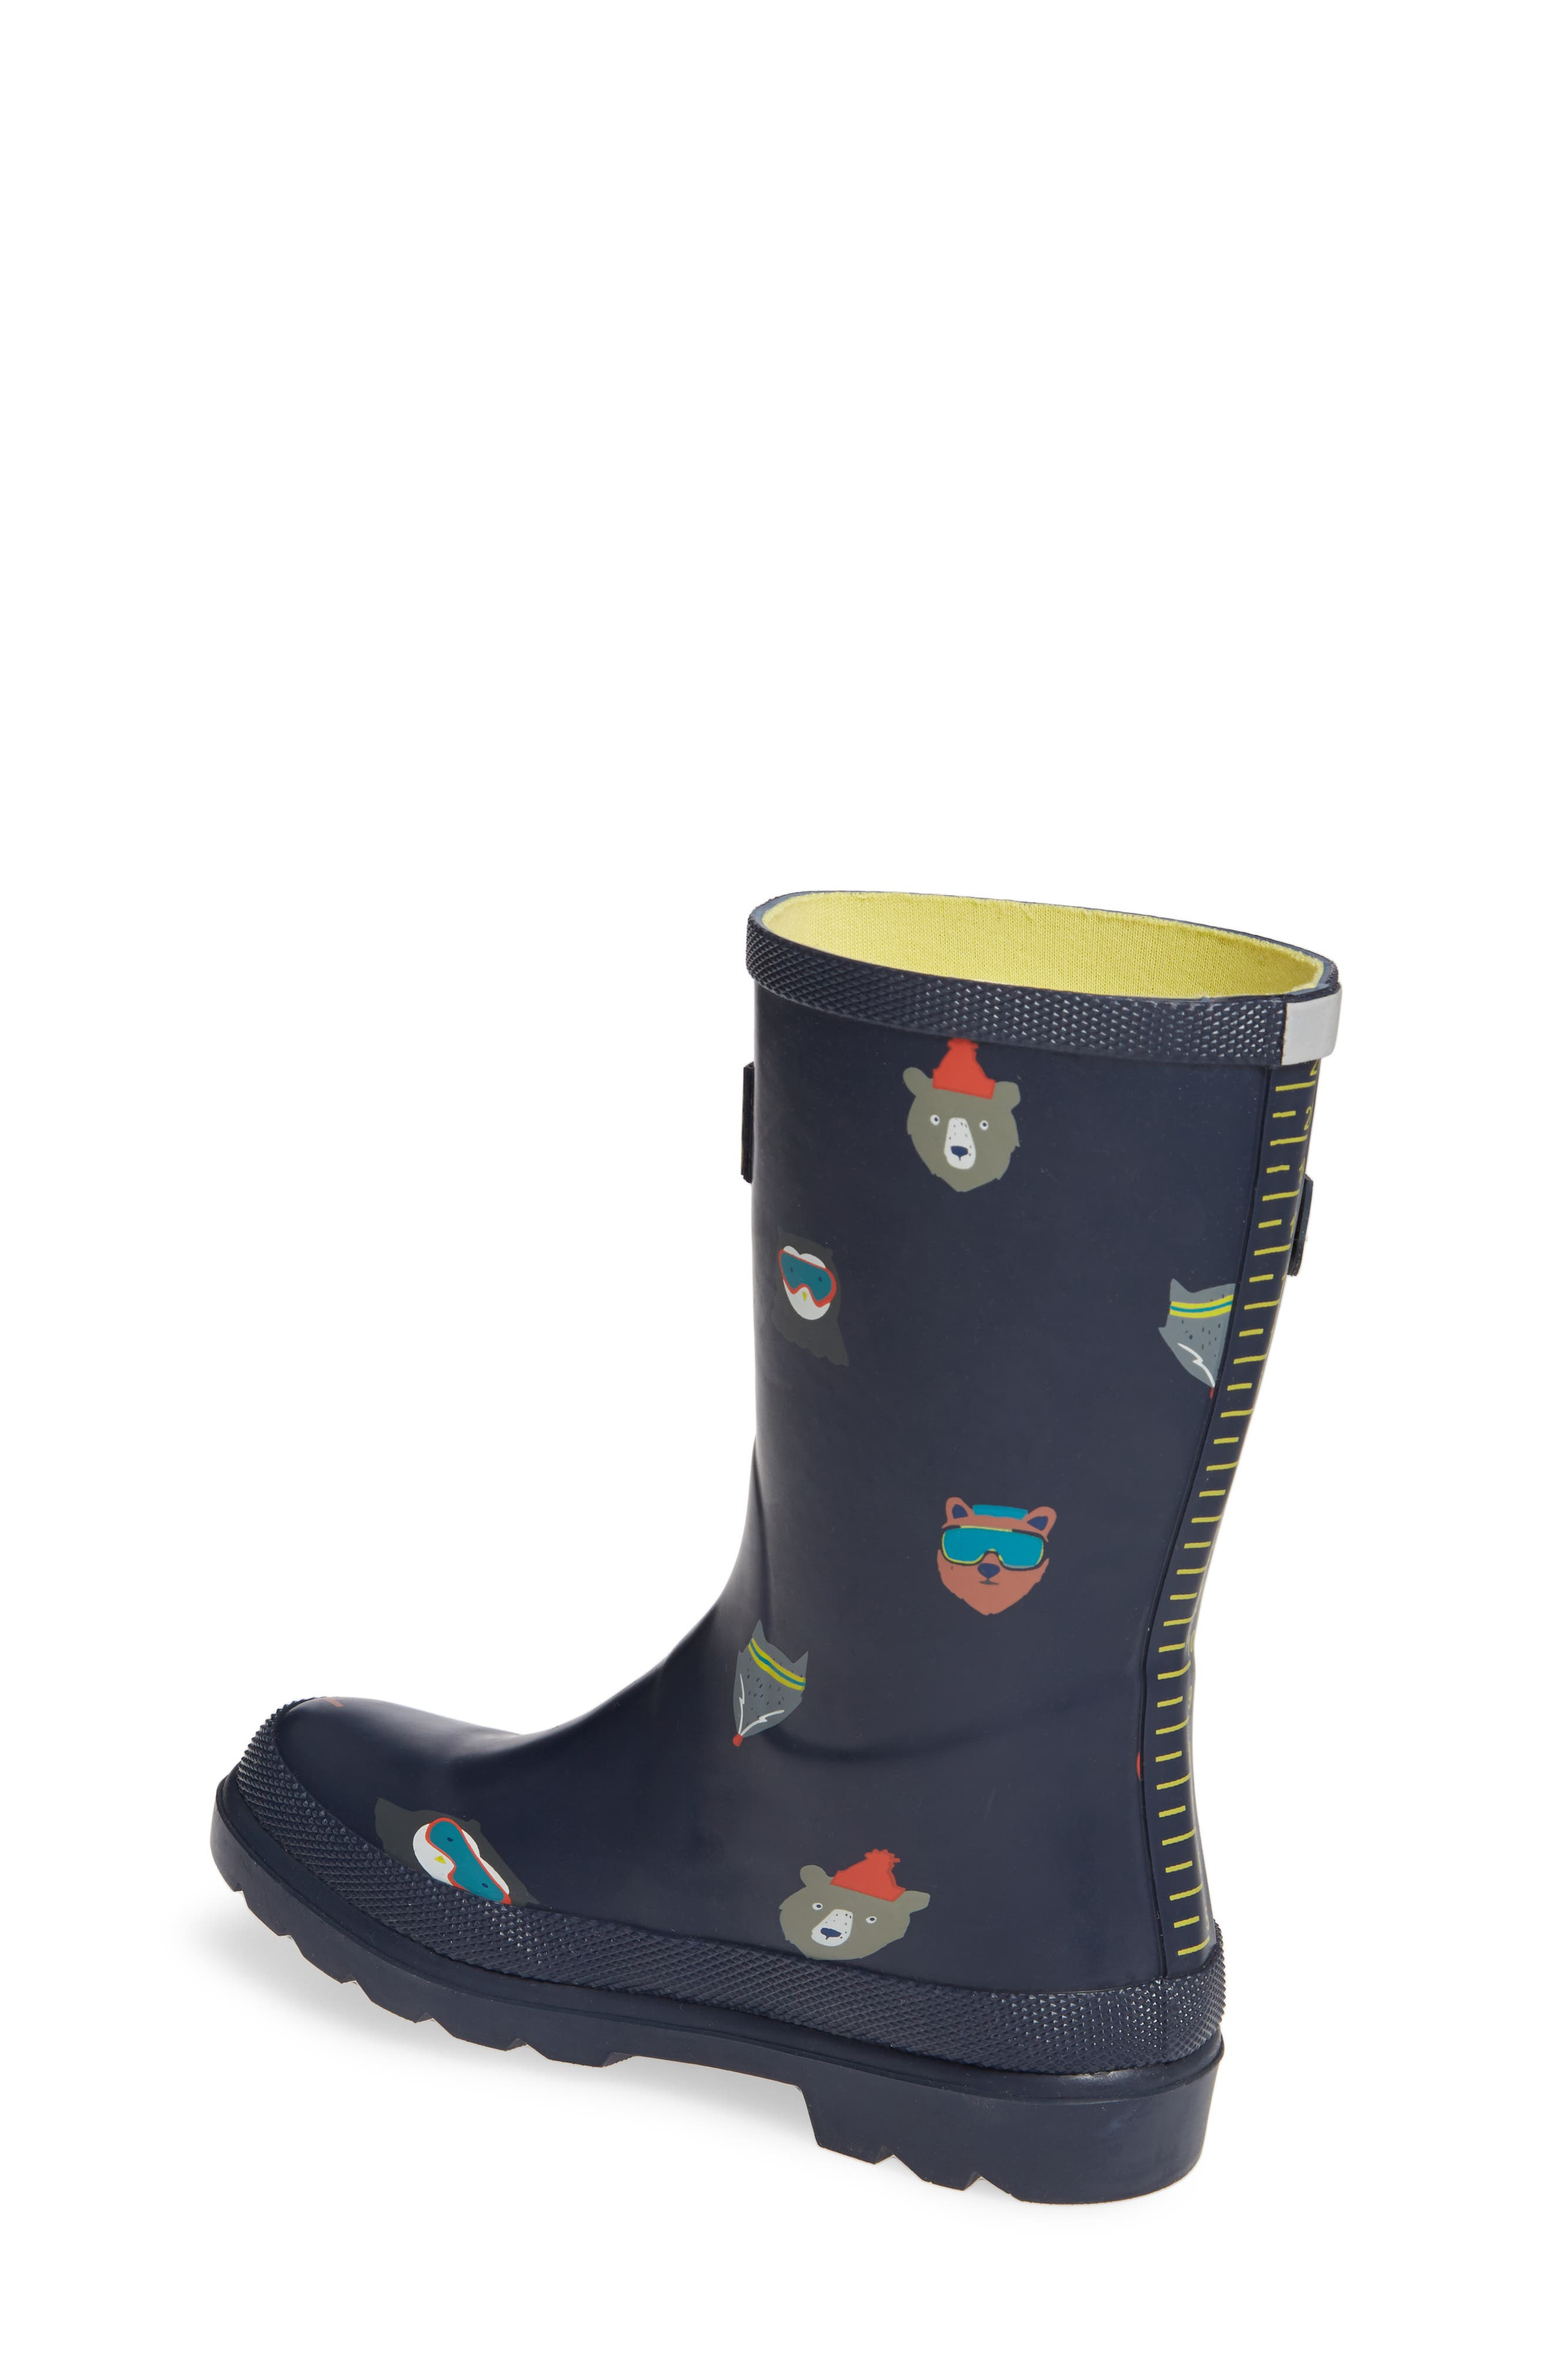 Welly Print Waterproof Rain Boot,                             Alternate thumbnail 2, color,                             FRENCH NAVY ANIMALS